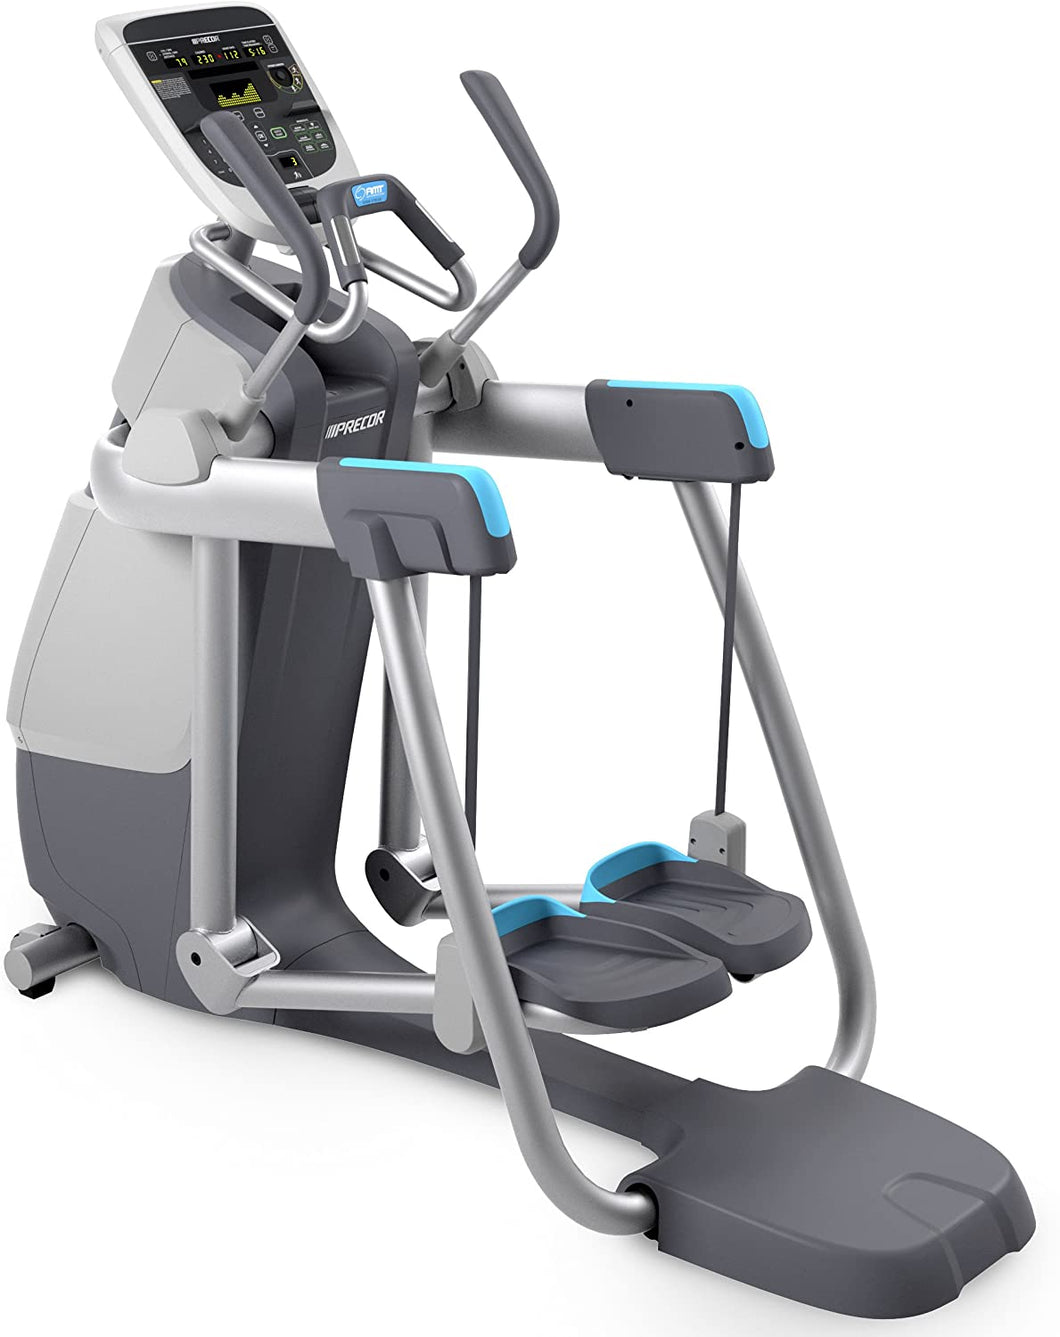 Precor AMT 833 with Open Stride Adaptive Motion Trainer